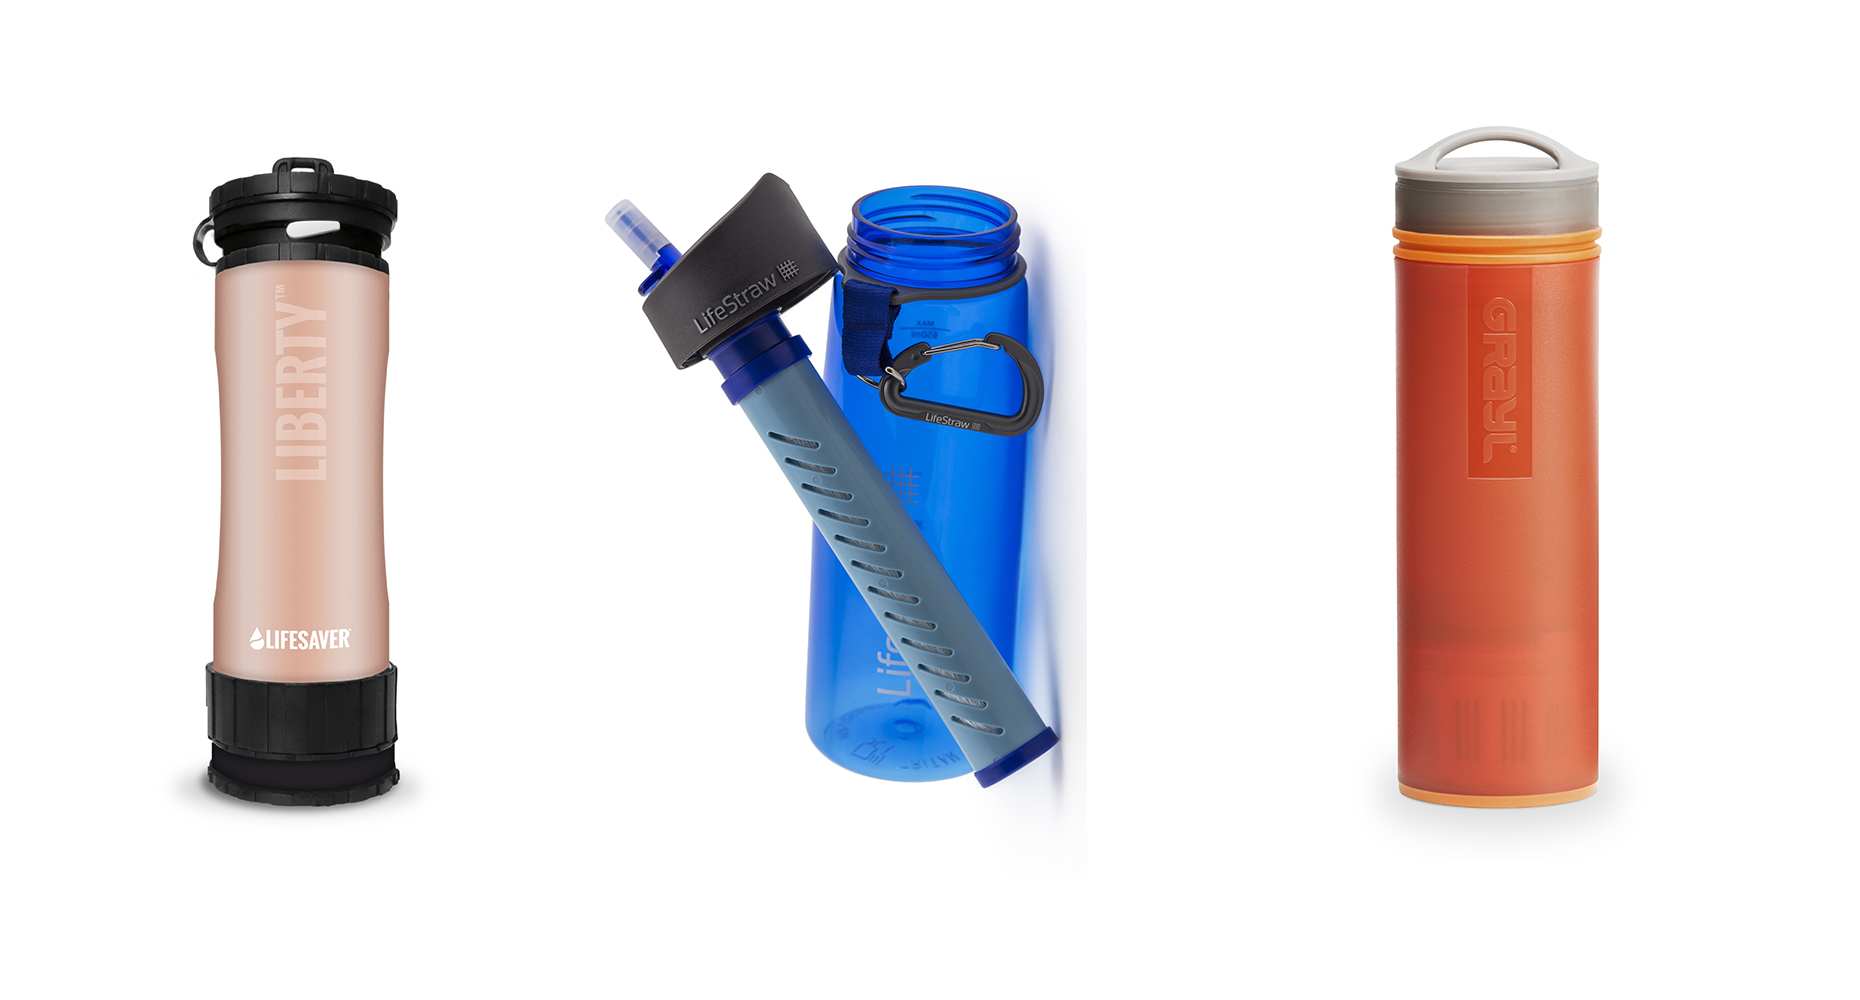 Adventure bottles that filter really dirty water